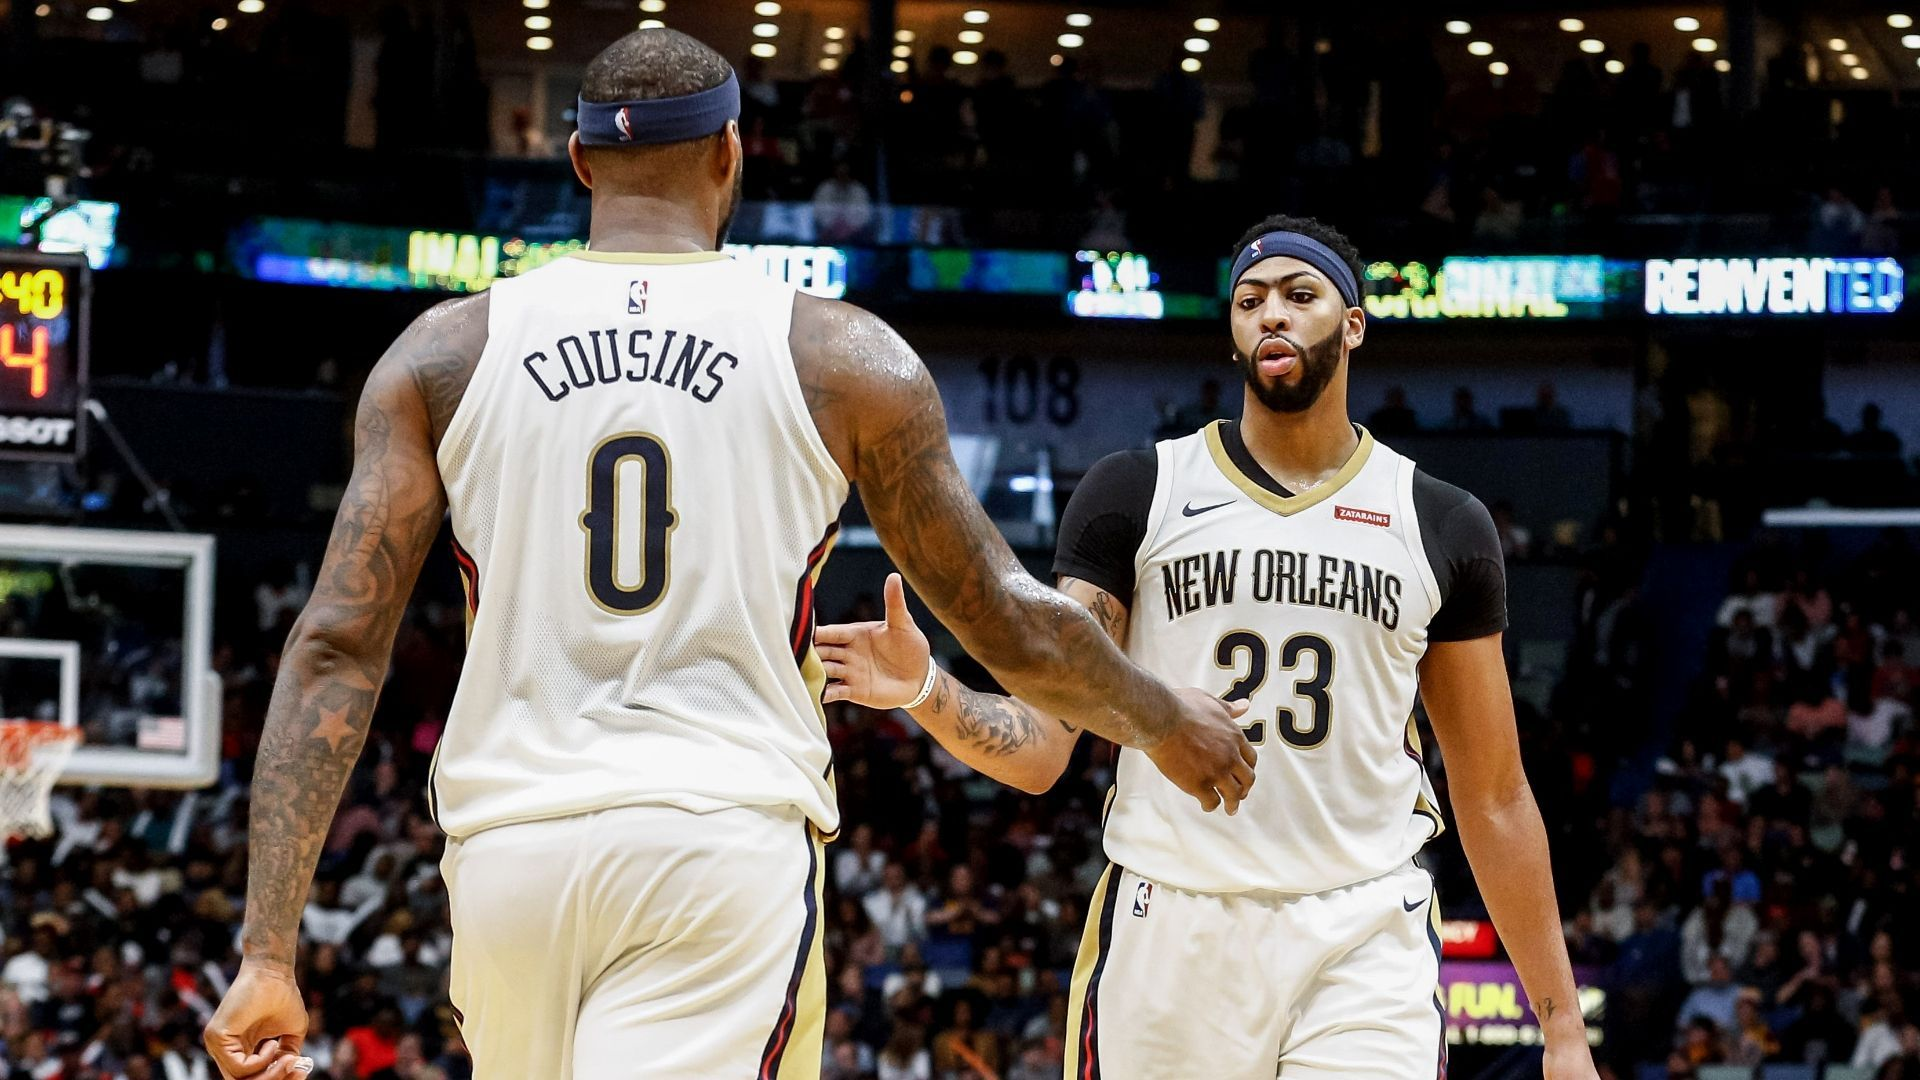 7898bd998 Anthony Davis leads New Orleans with 30 points while DeMarcus Cousins  contributes a triple-double in a 22-point rout of Cleveland.